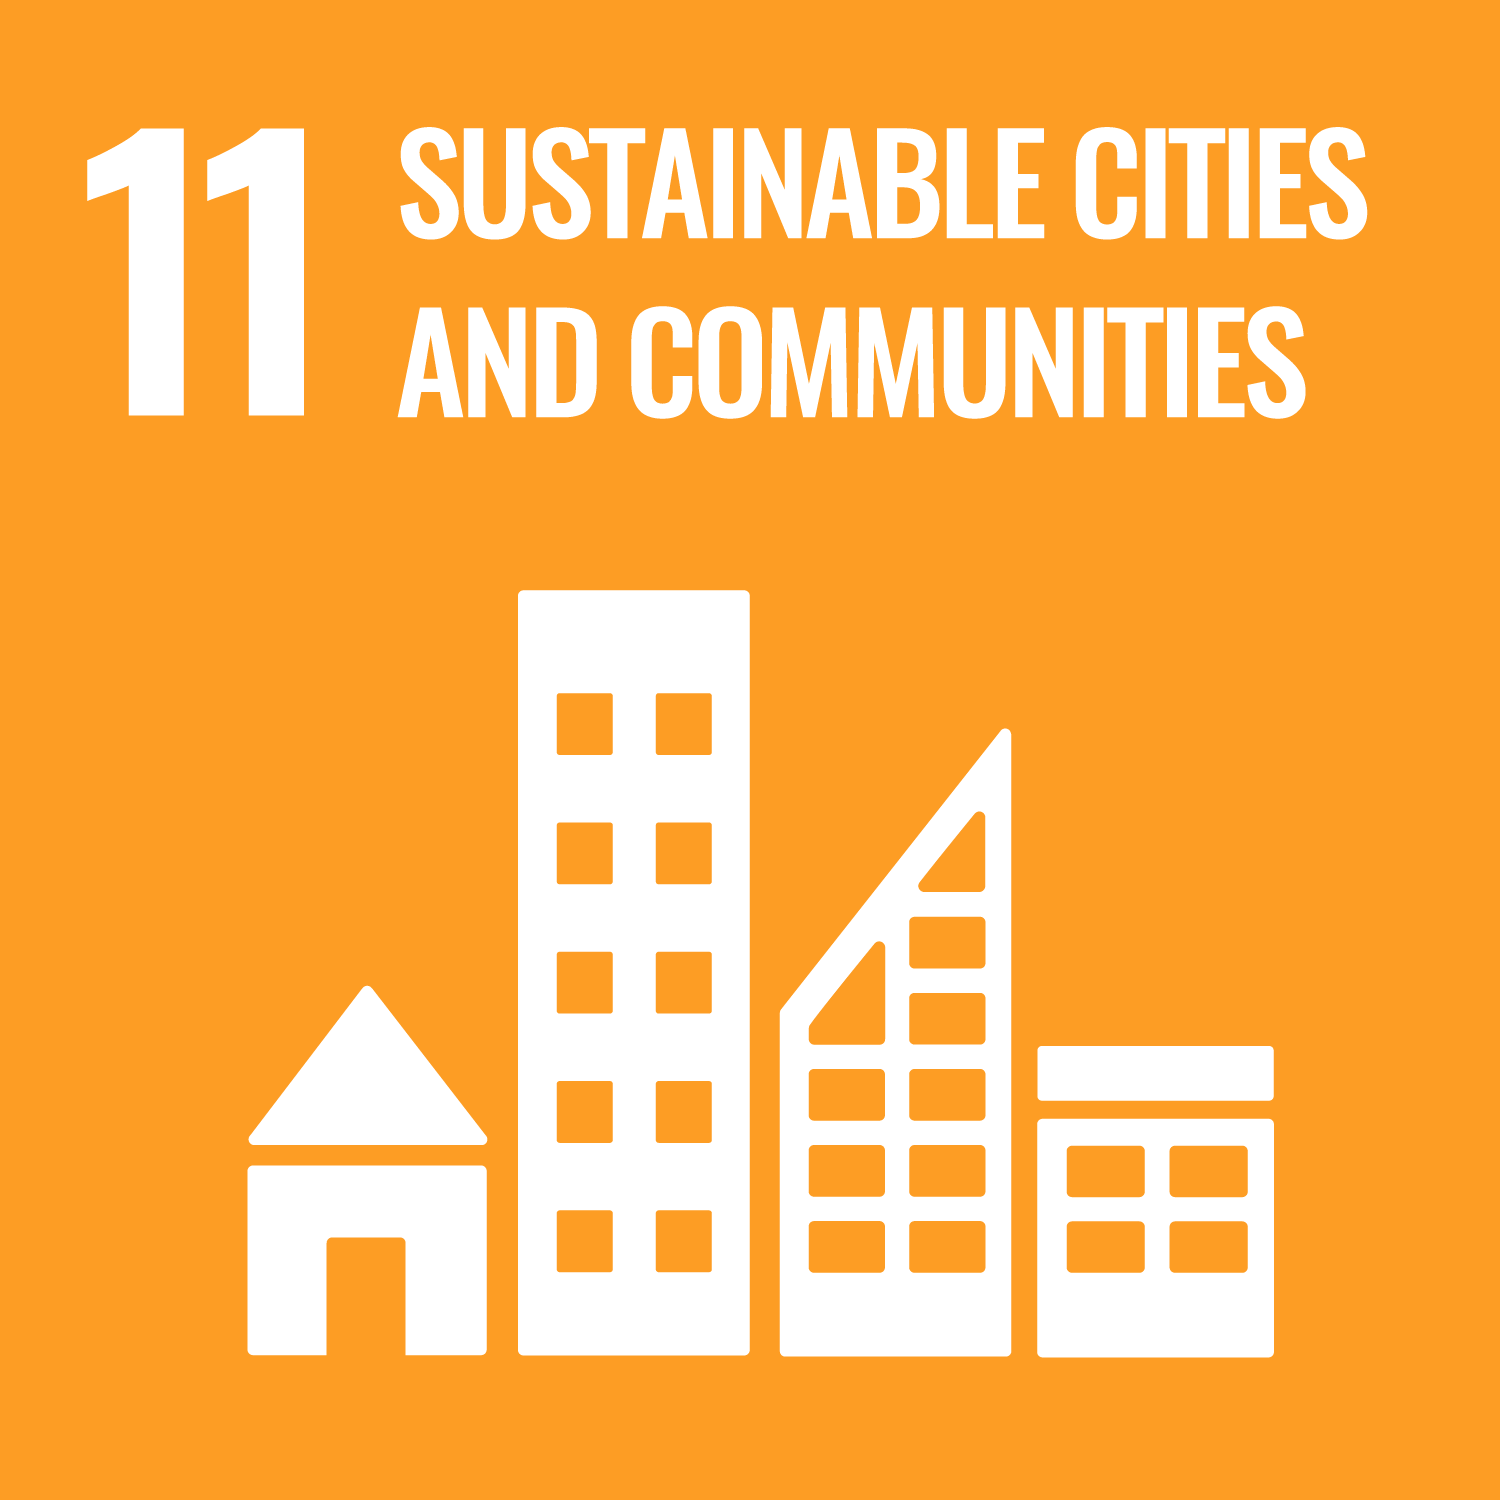 UN Sustainable Development Goal 11: Sustainable Cities and Communities